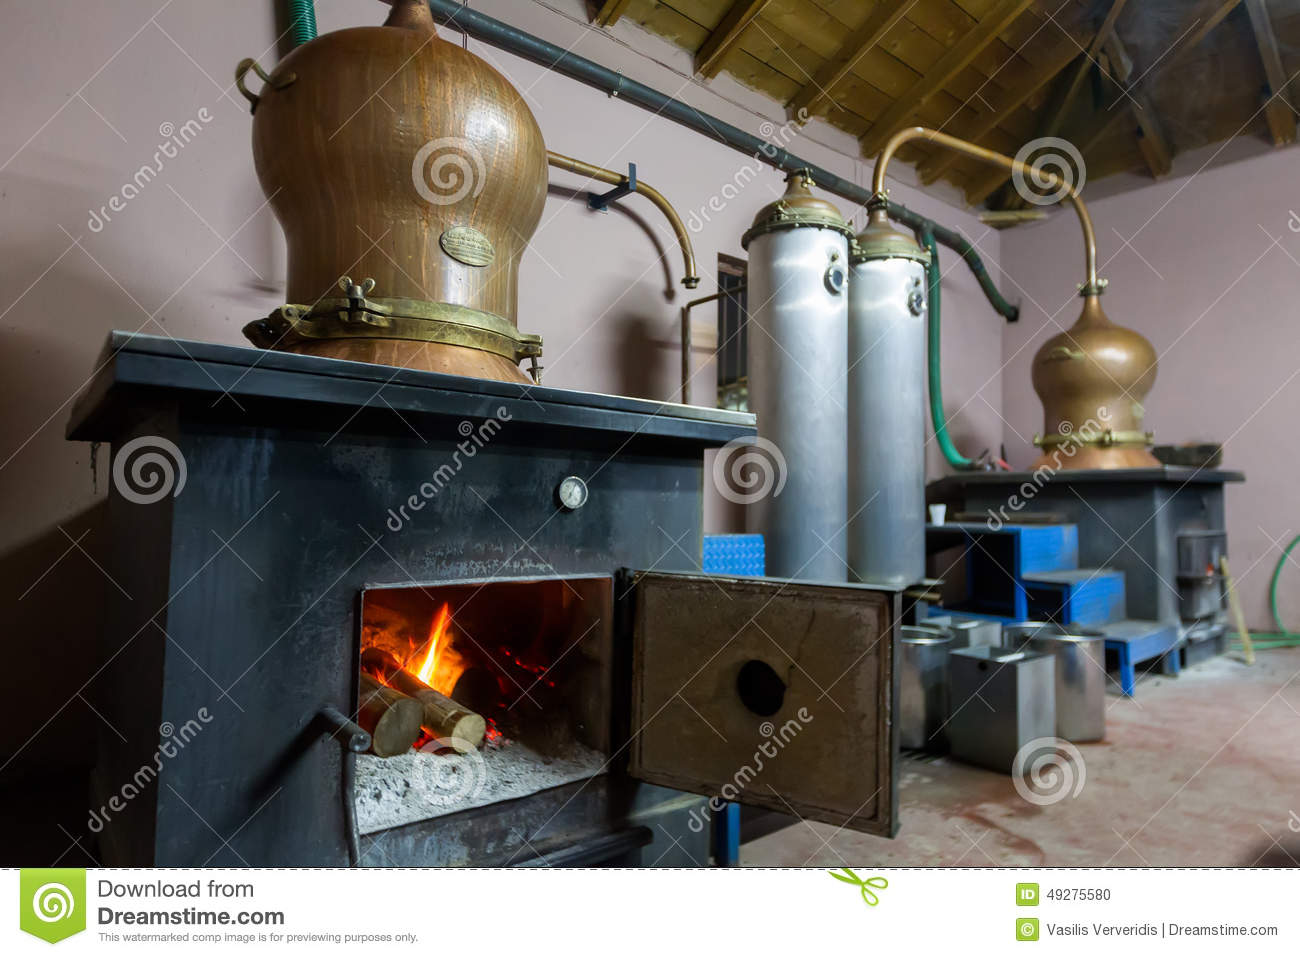 During traditional distillation of alcohol and production of hom